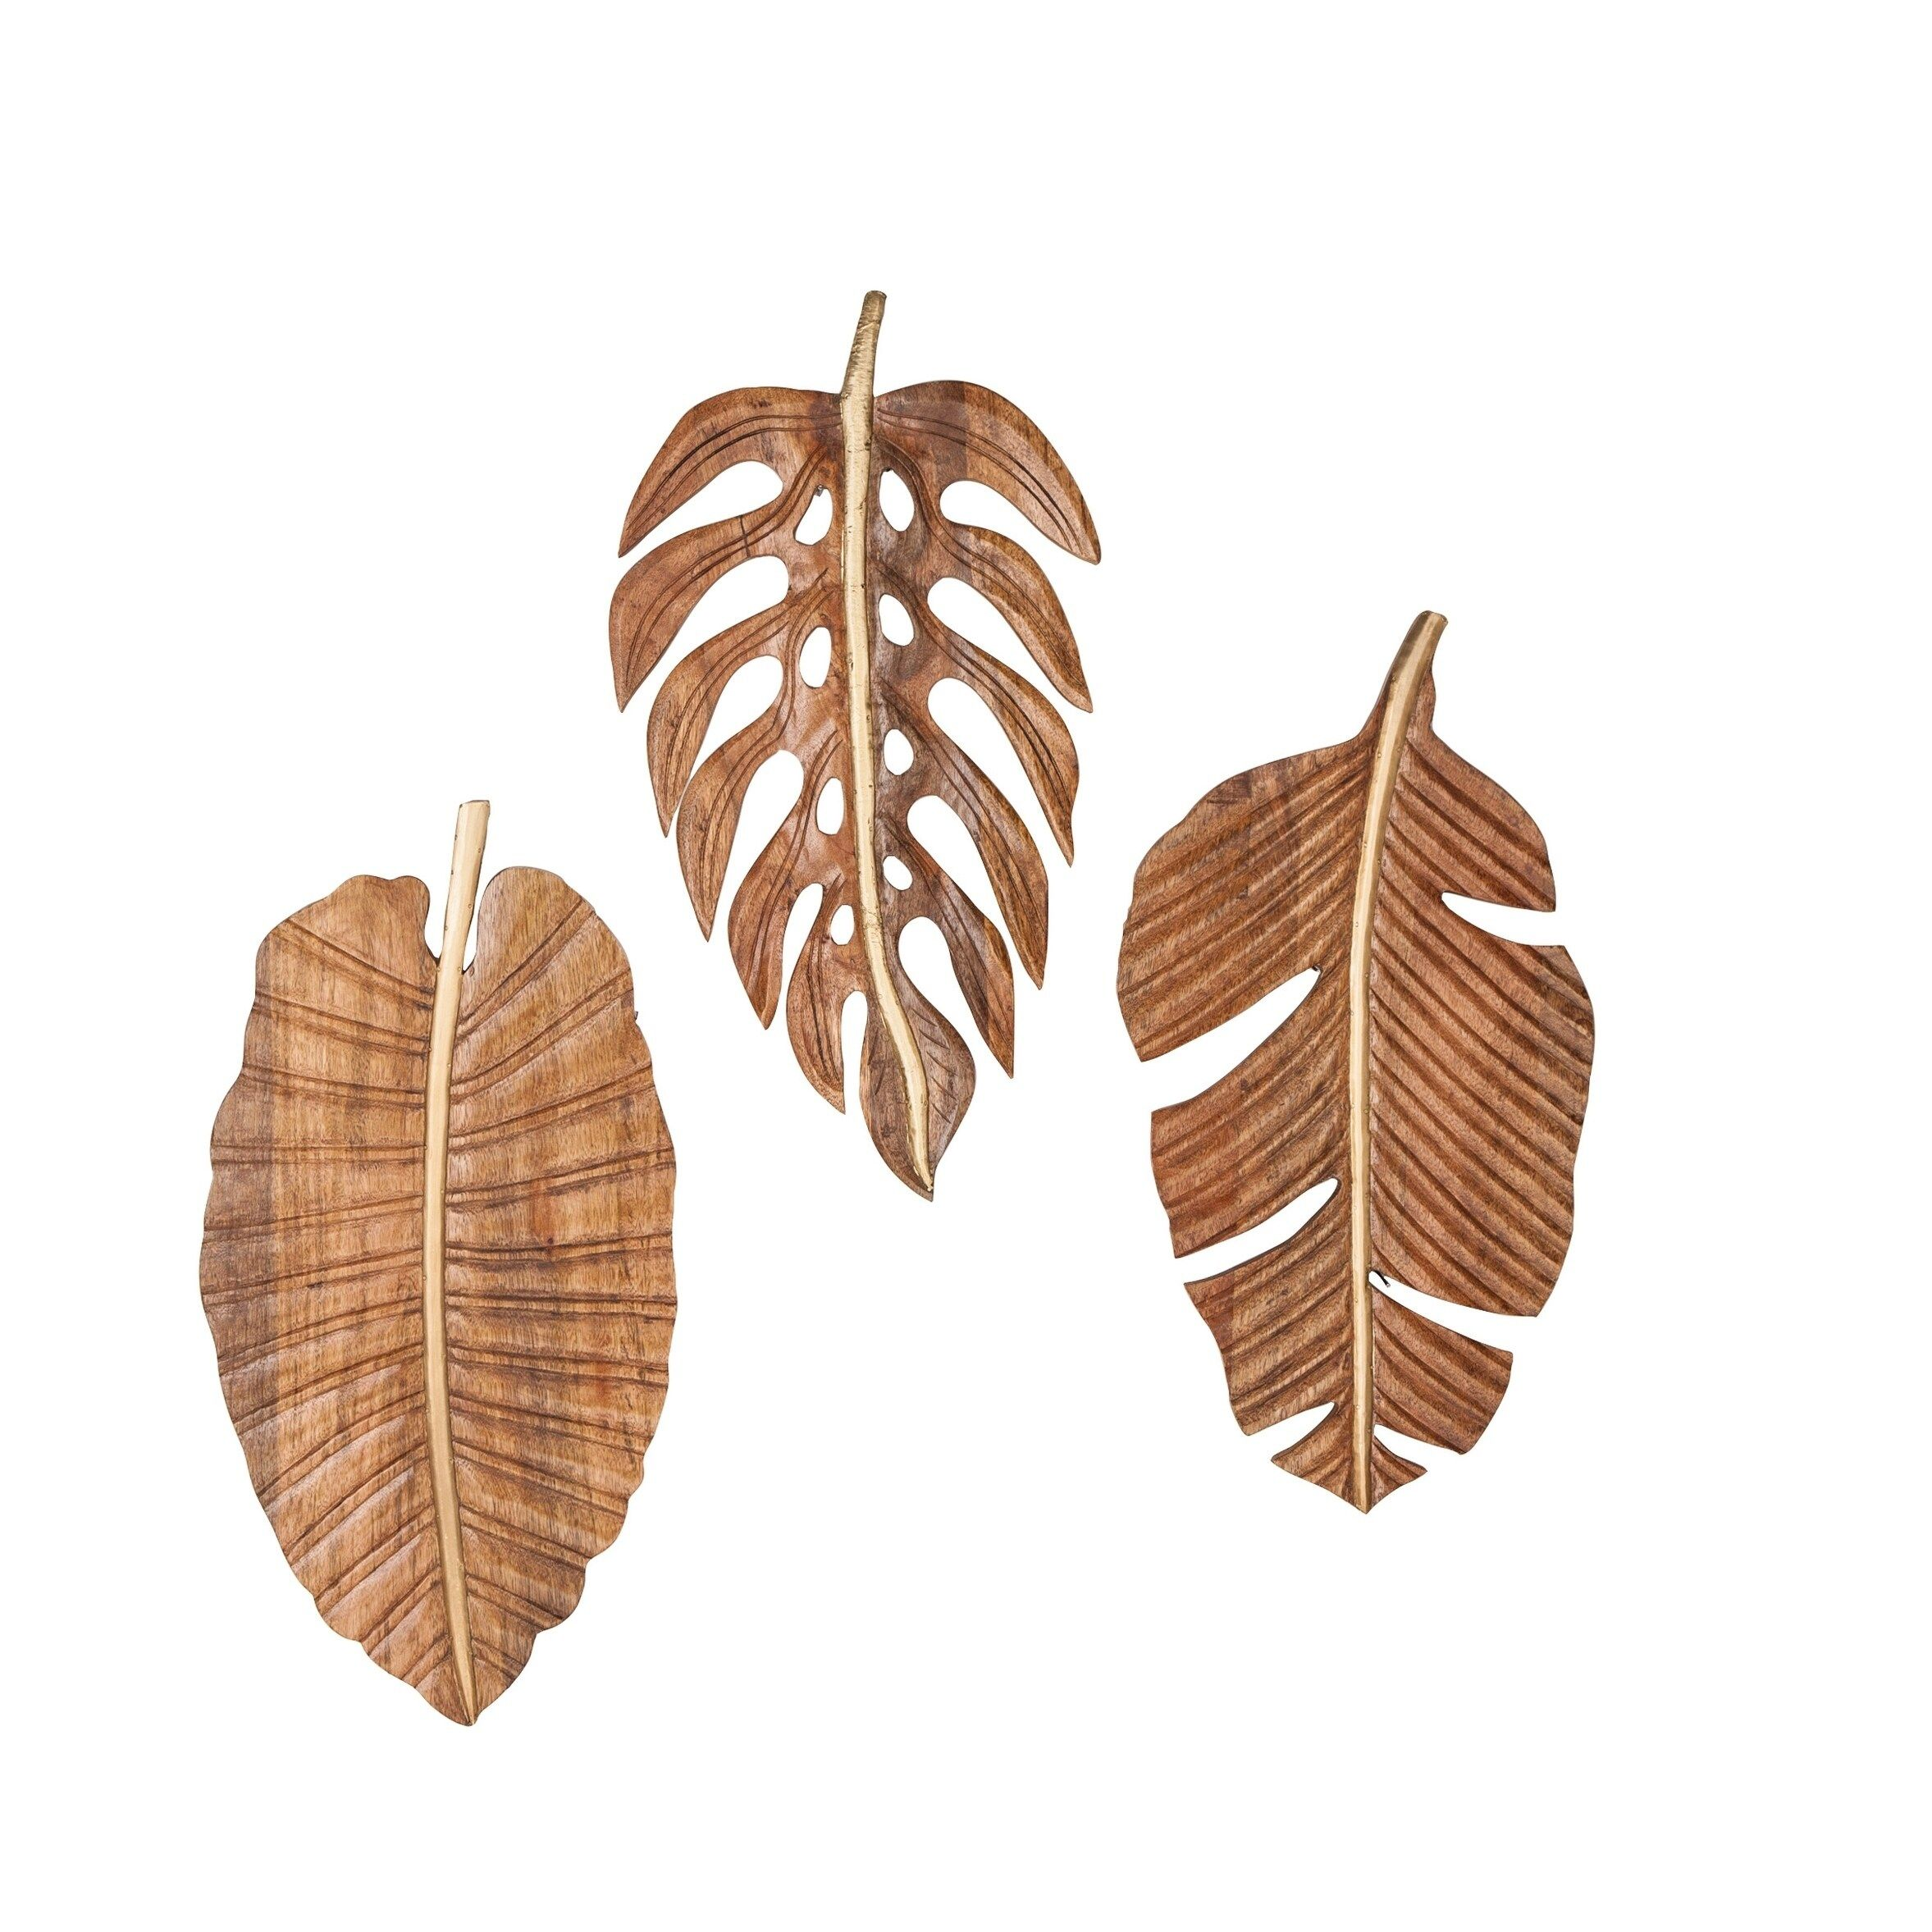 Carved Wood 12 X 24 Inch Leaf Wall Art Set Of 3 By Studio 350 Brown Leaf Wall Art Carved Wall Art Carved Wood Wall Art